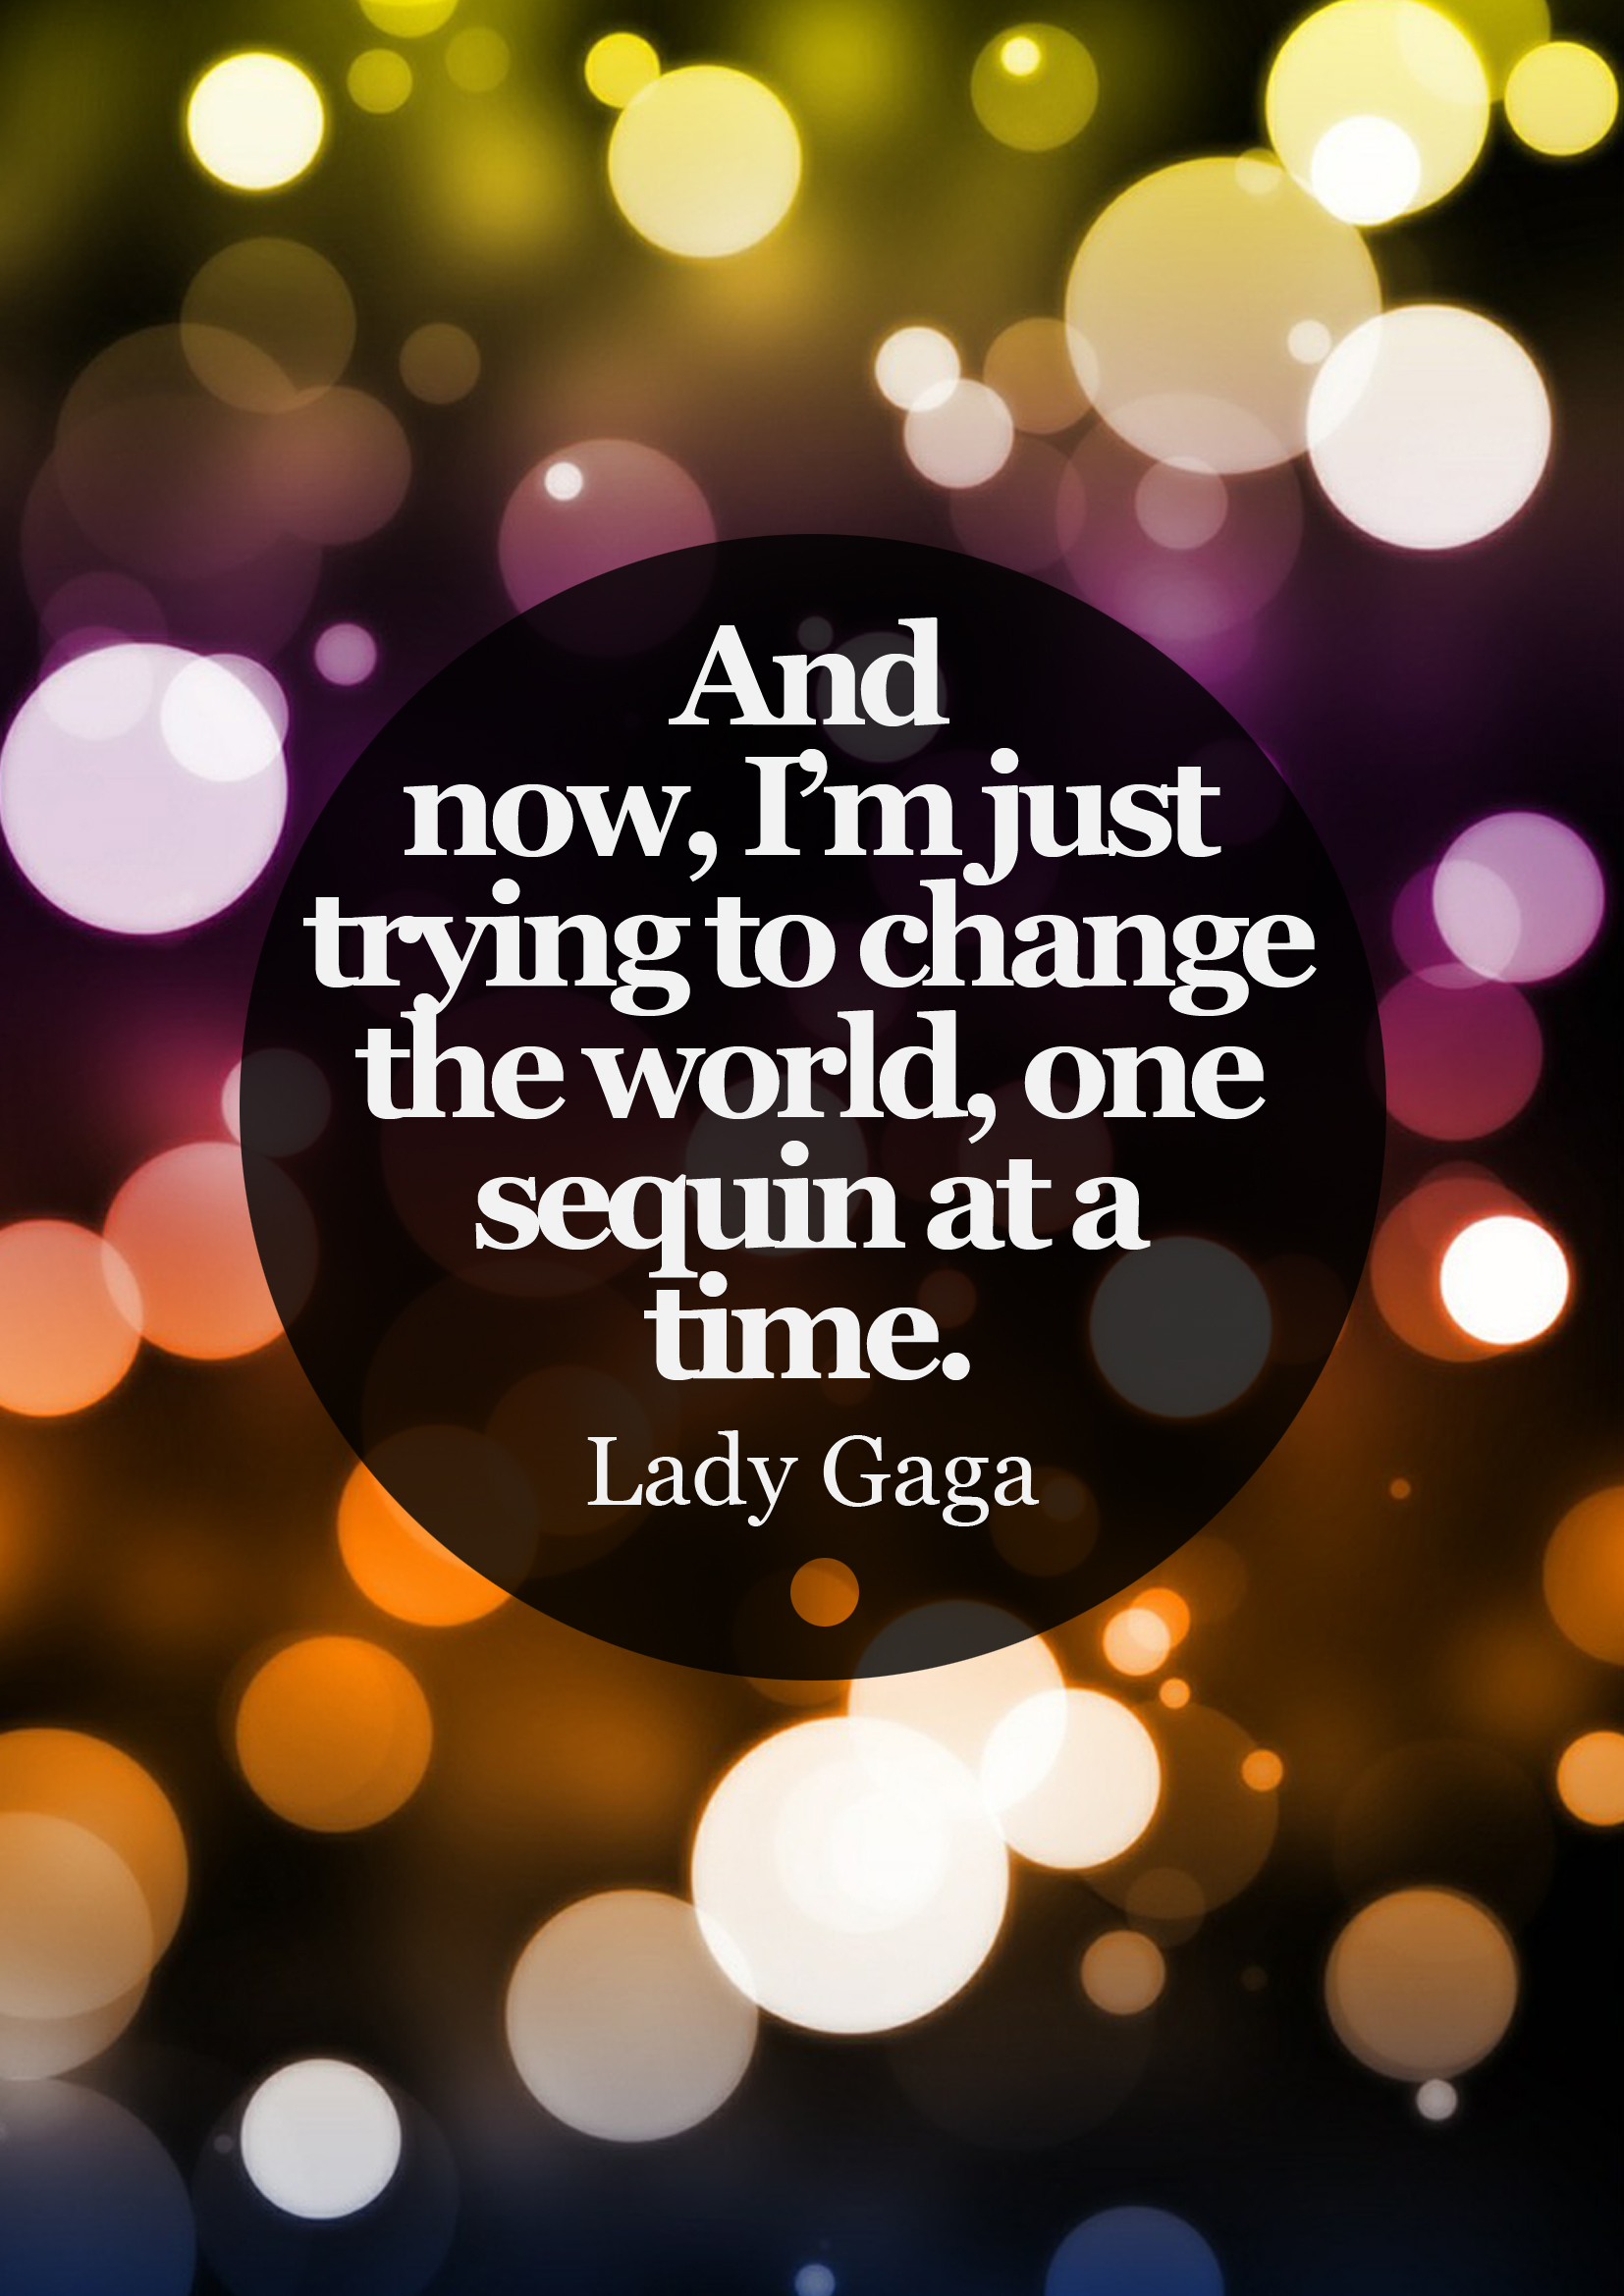 #quote #Lady Gaga